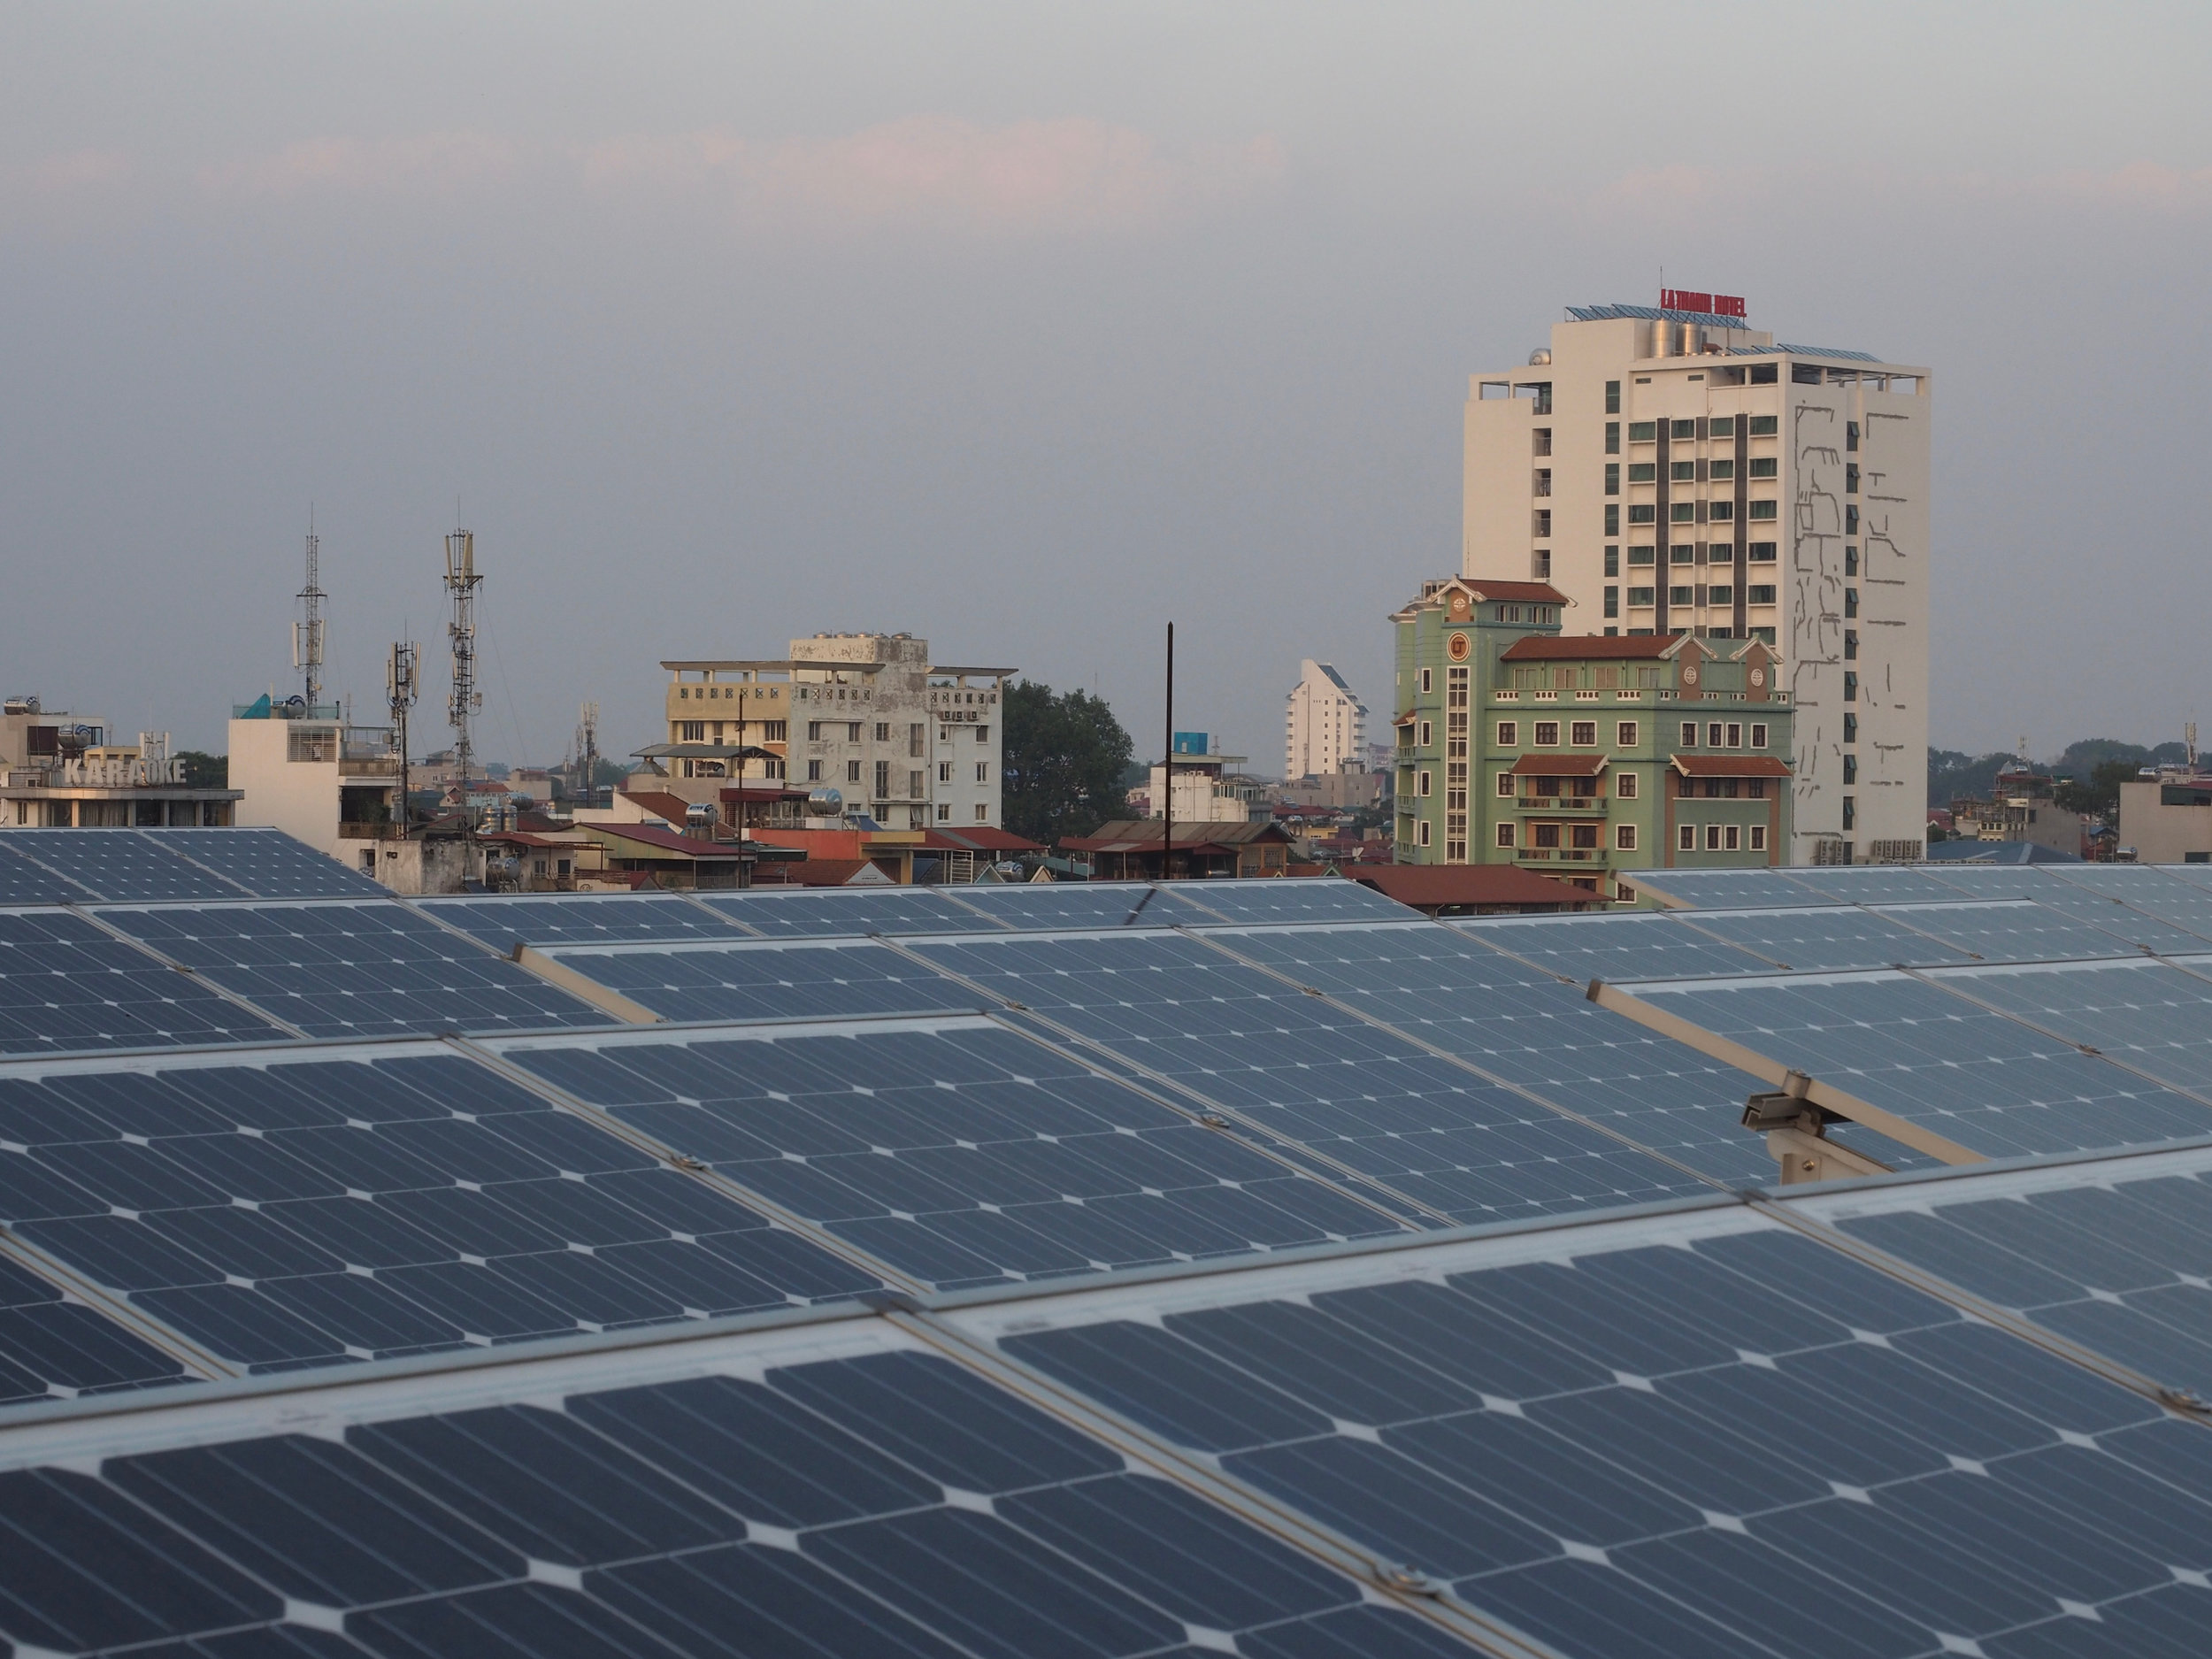 Utility and household scale solar PV is still in the pioneer stage in Vietnam.